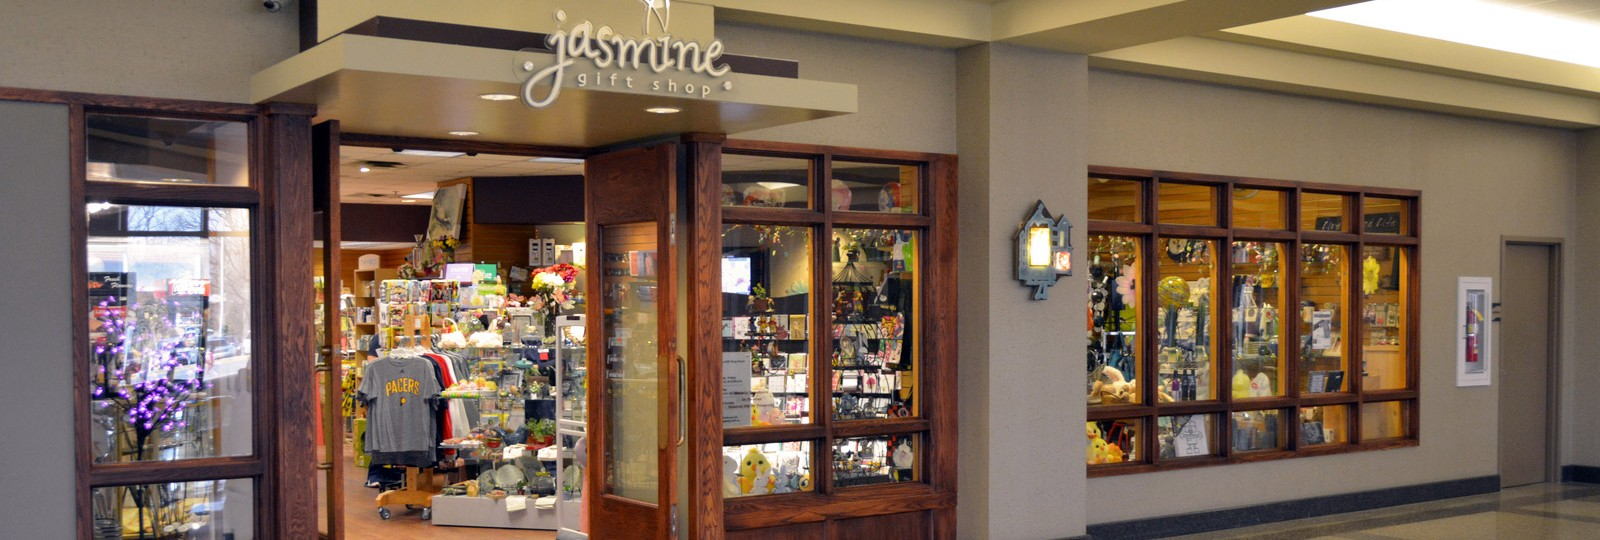 Jasmine Gift Shop East | Community Health Network